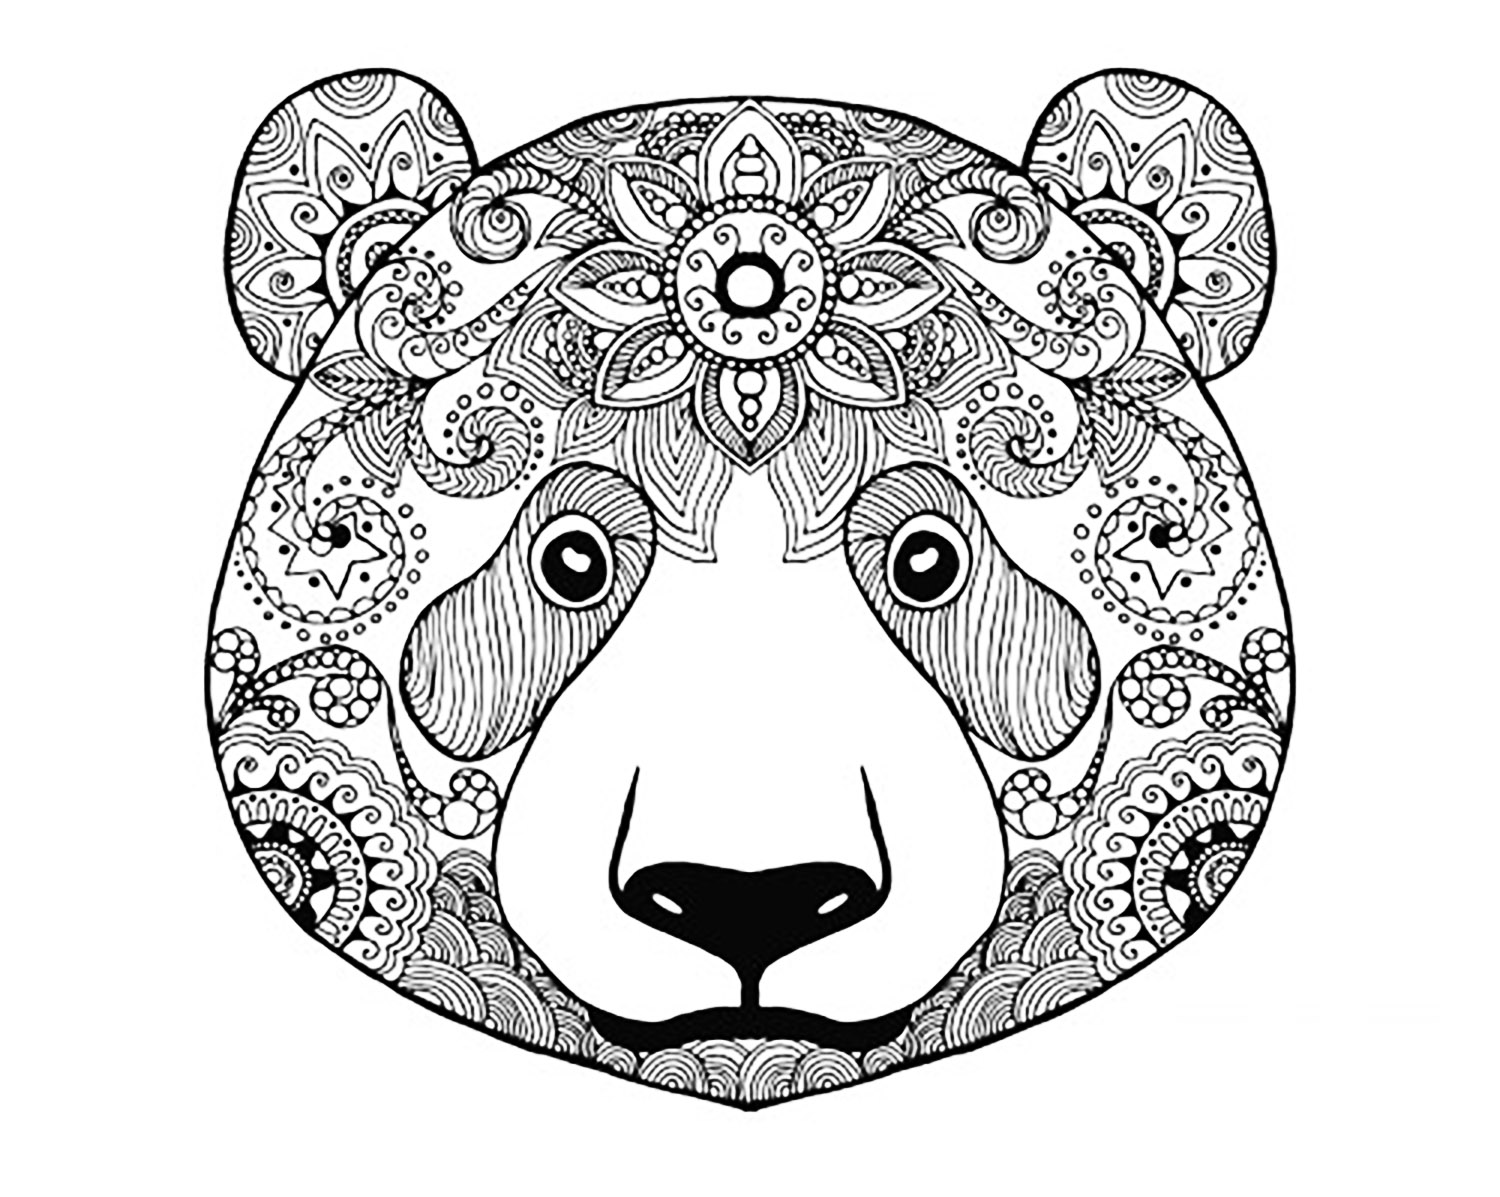 coloring pages adults animals animal coloring pages for adults best coloring pages for animals coloring pages adults